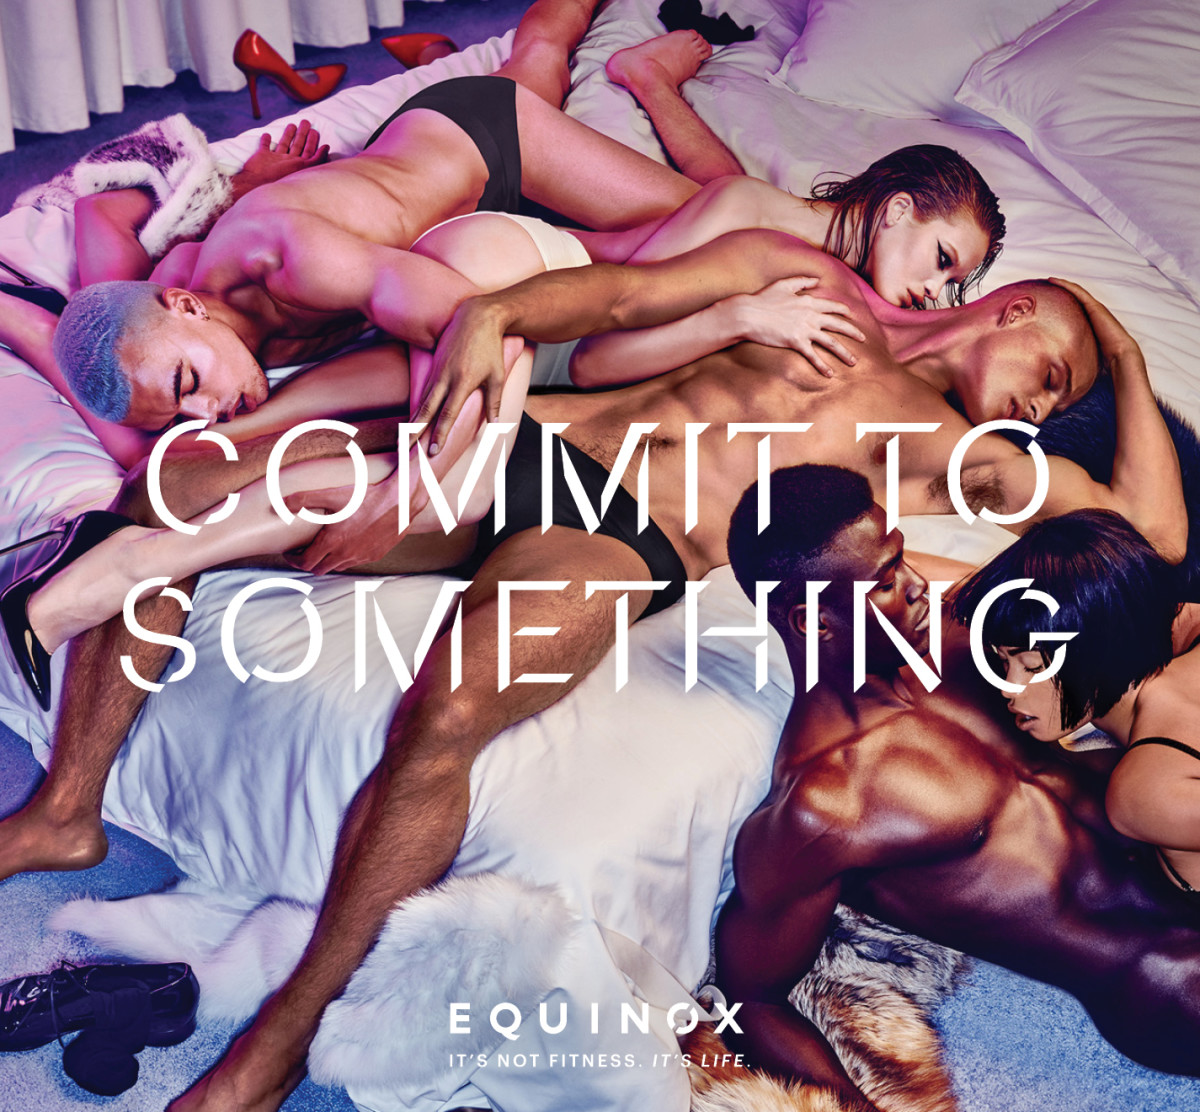 An image from Equinox's campaign for 2016. Photo: Steven Klein